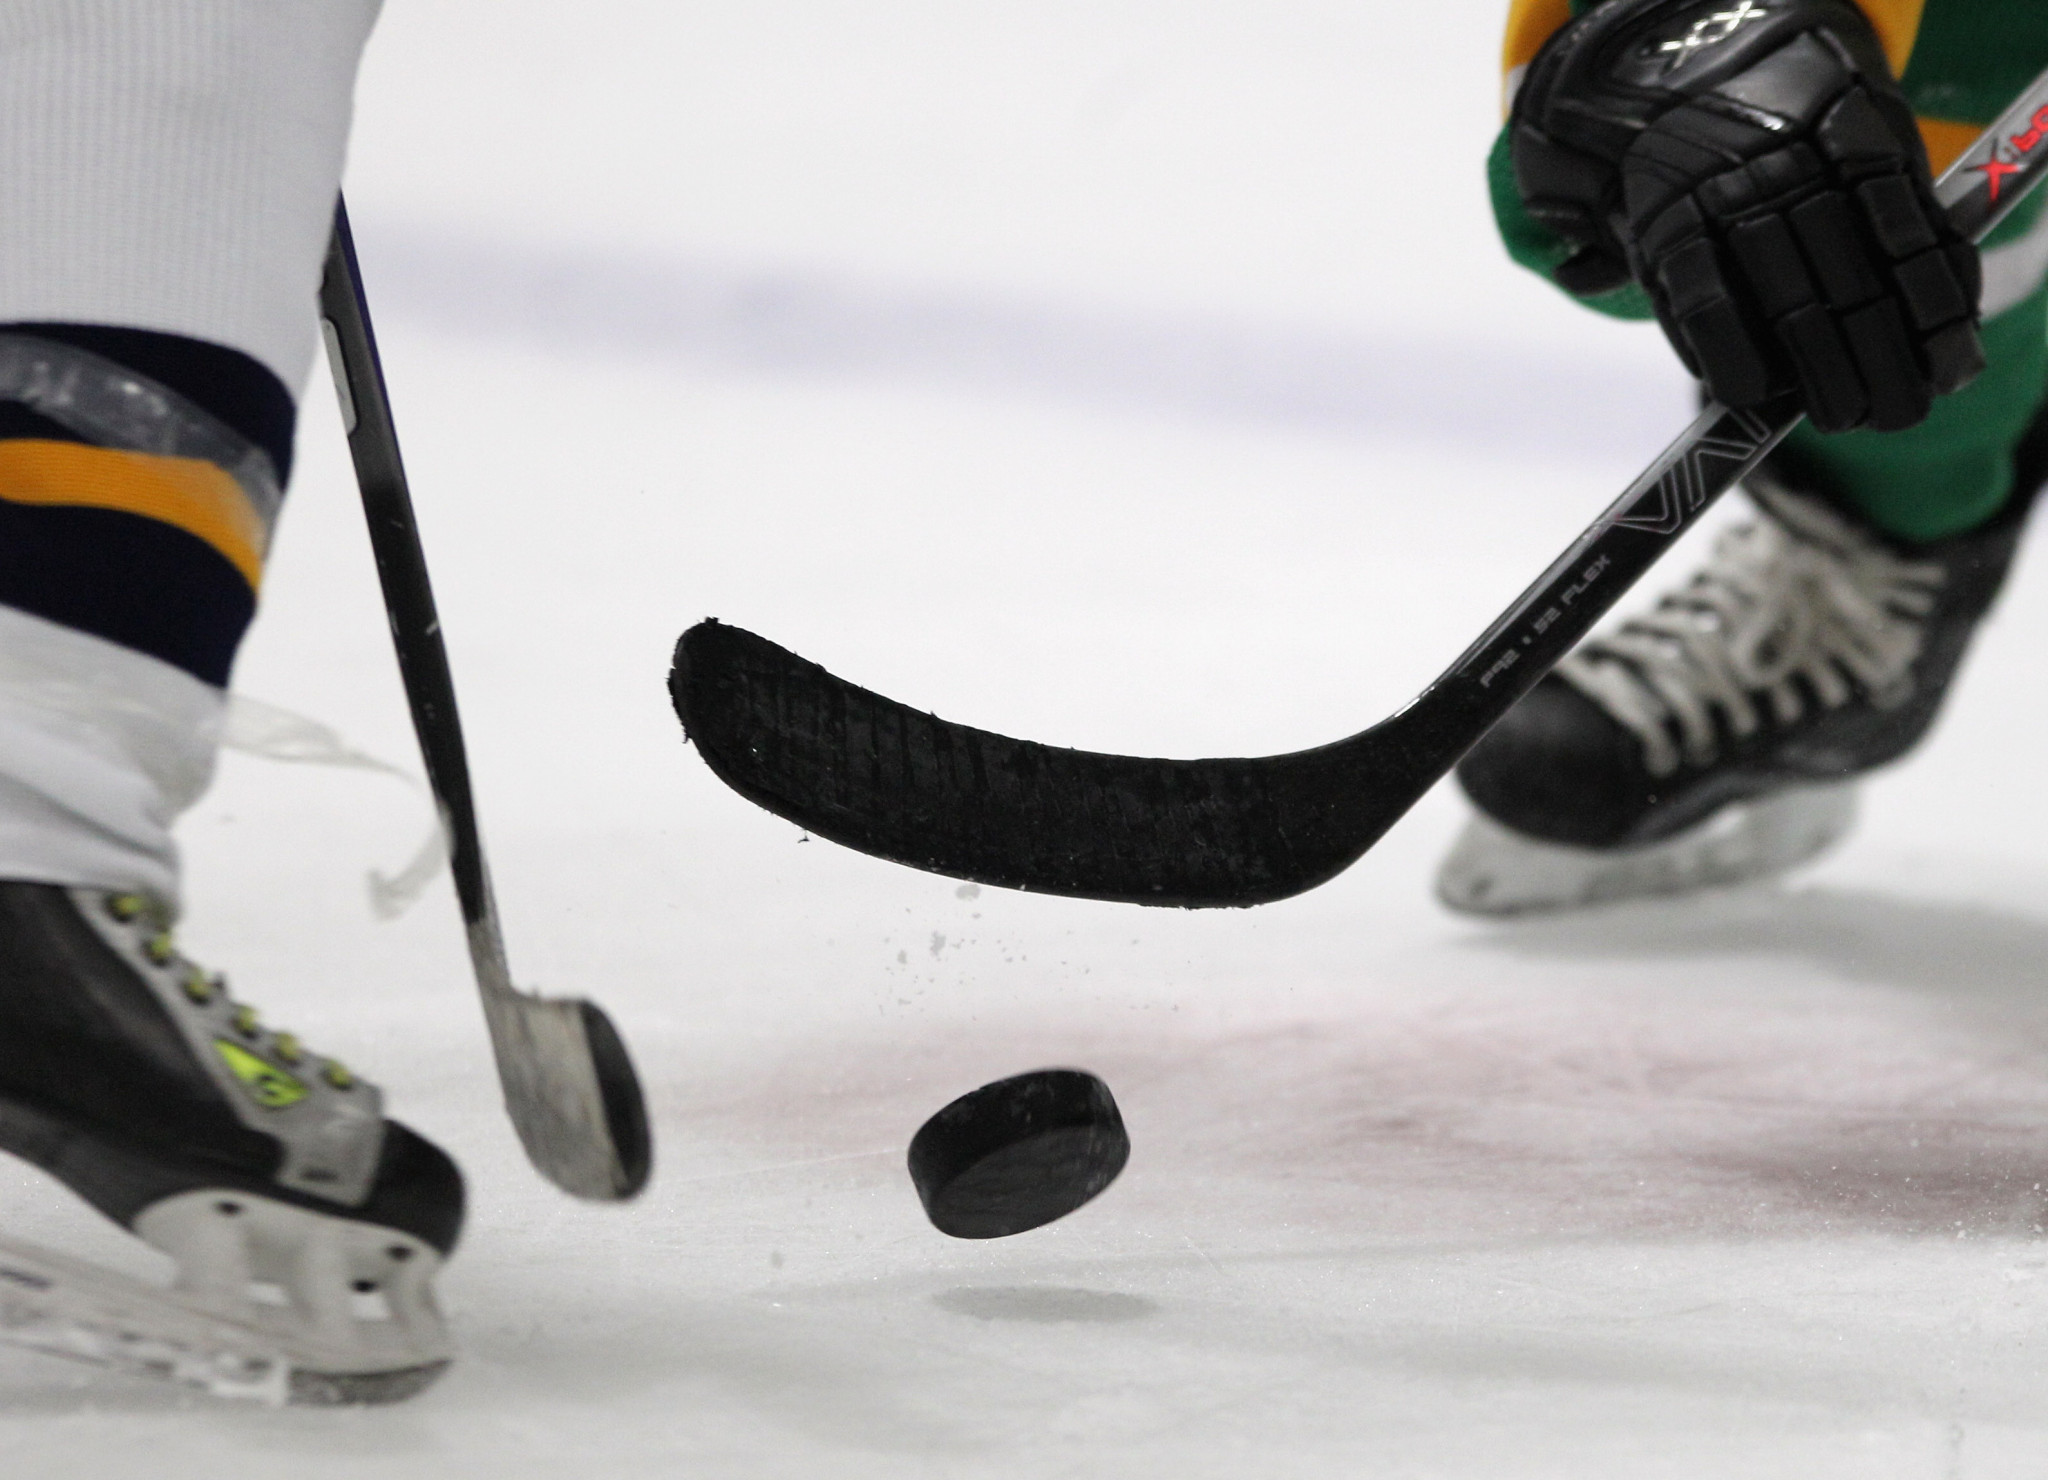 Sweden to face US hosts in quarter-finals of IIHF Under-18 World Championship